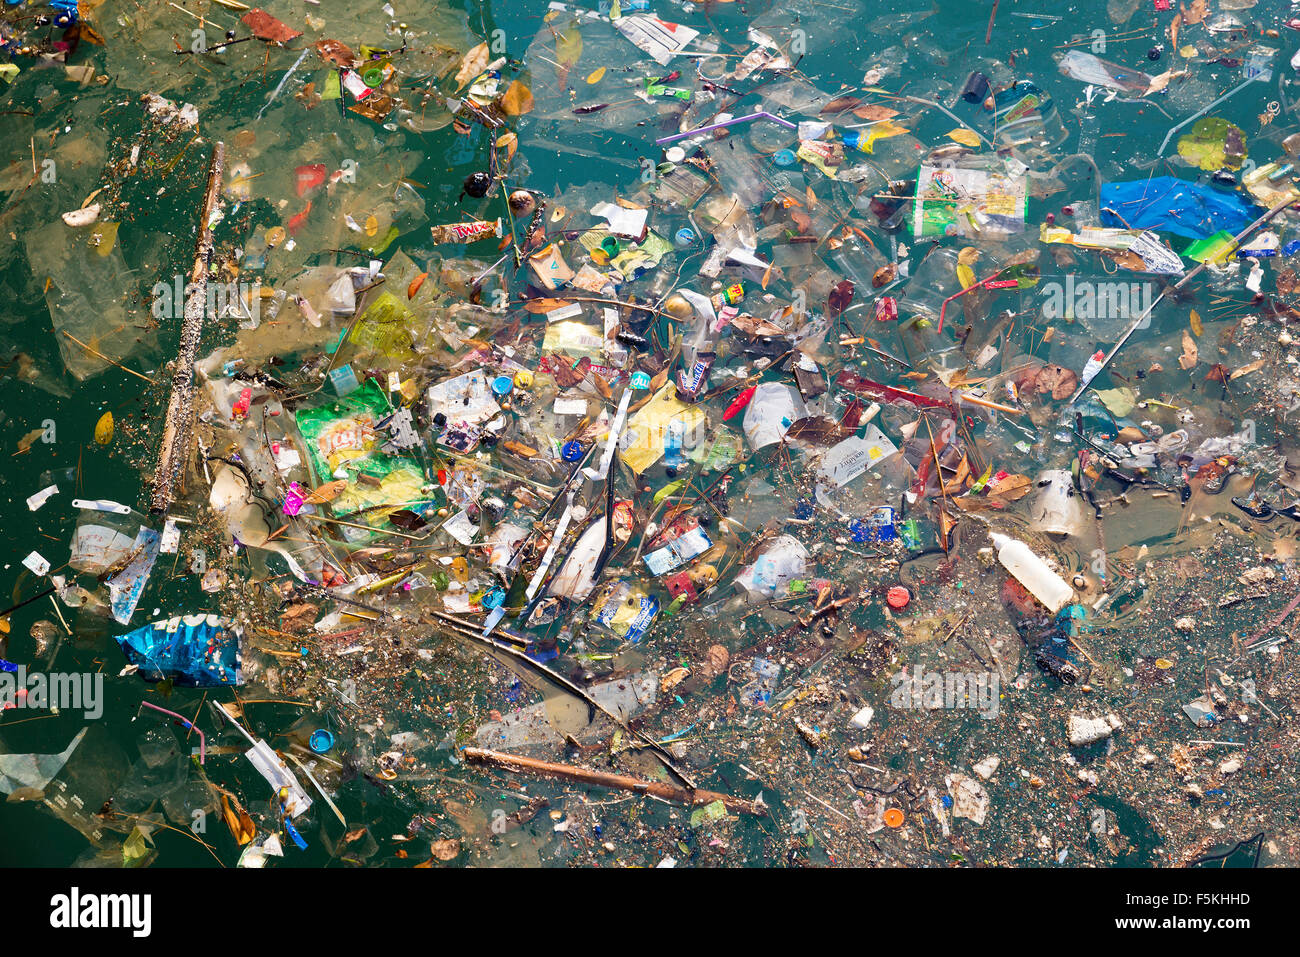 ATHENS, GREECE - OCTOBER 25, 2015: Port of Piraeus, a large amount of trash polluting the wate - Stock Image